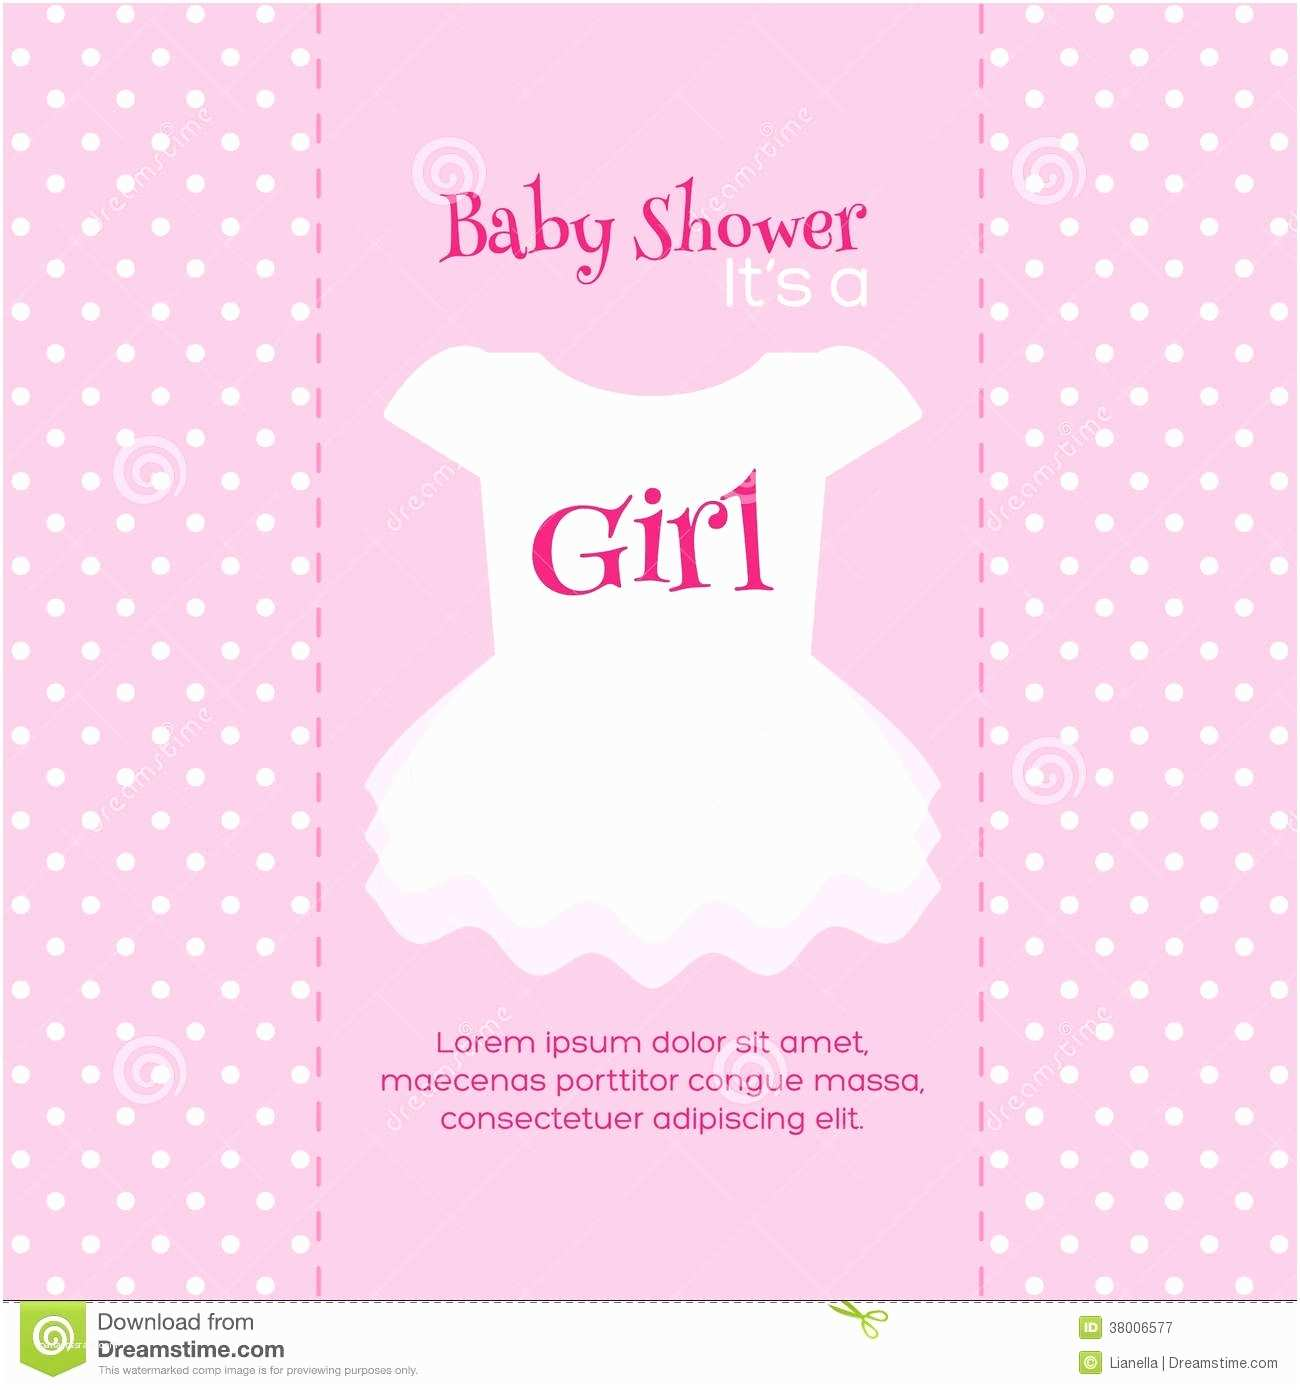 Baby Shower Invitations Free Free Baby Shower Invitations Templates Template Resume